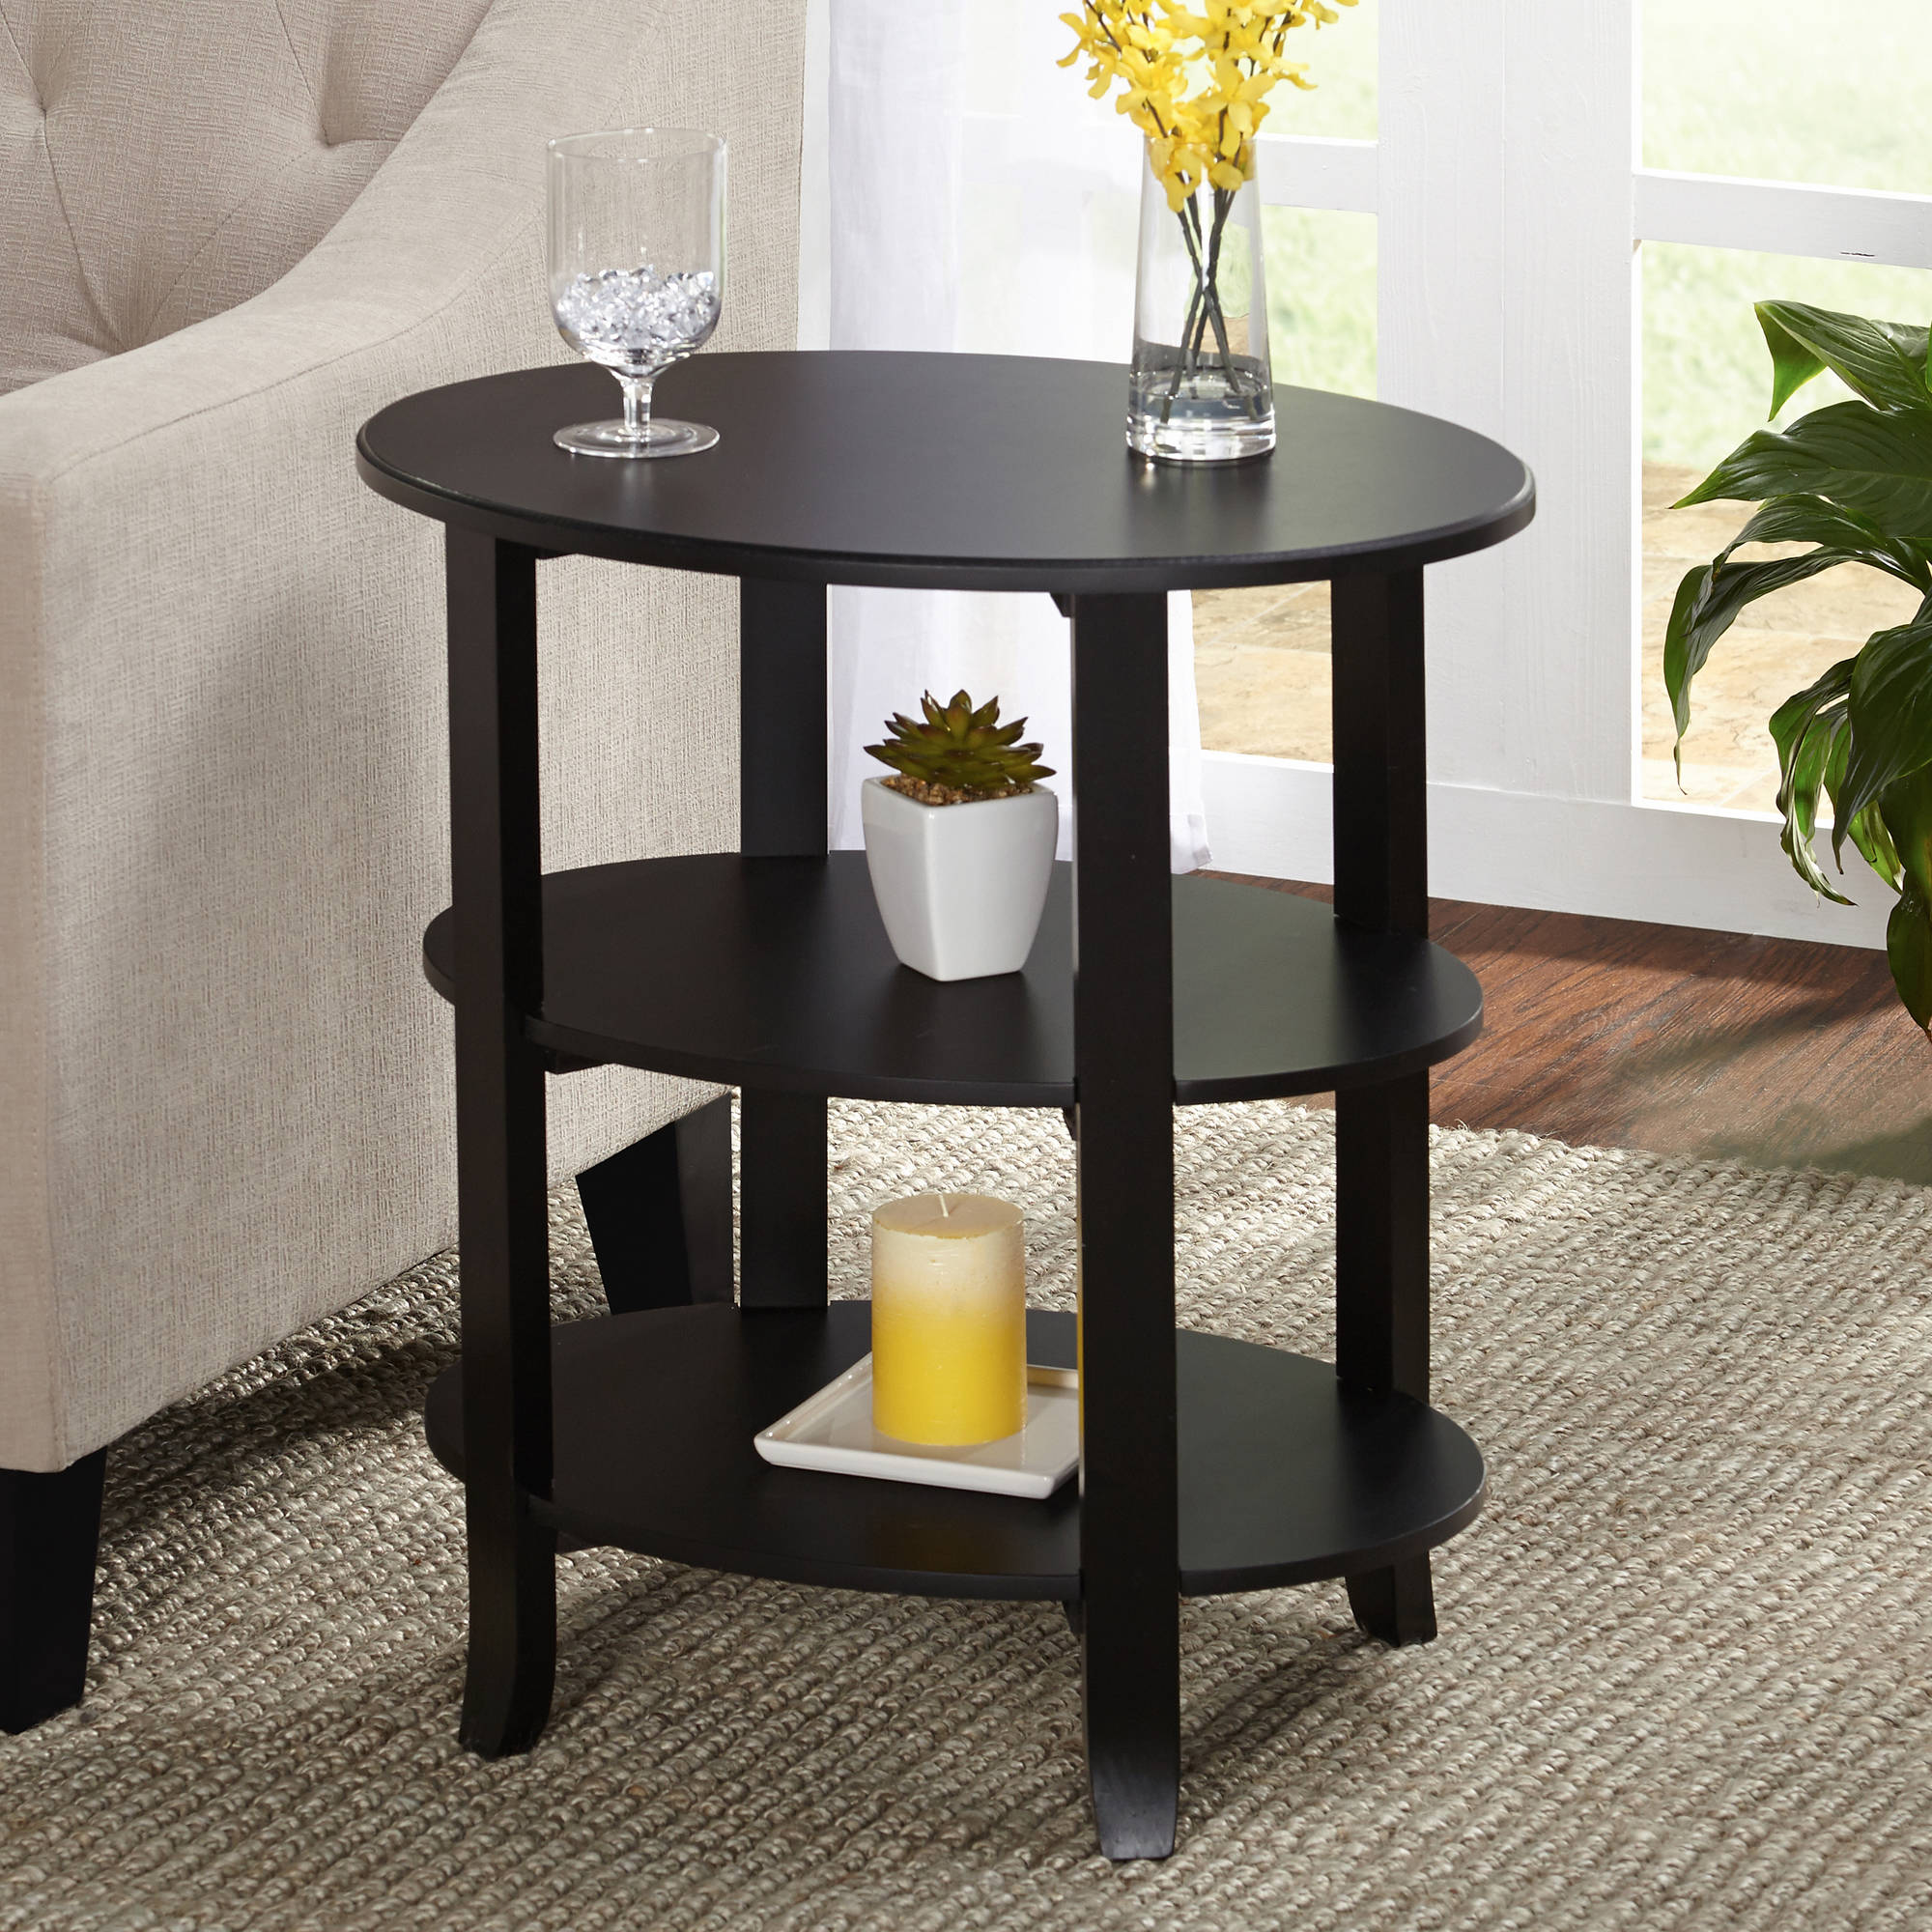 end tables callum chairside table with drawer easy way white coffee lamps round side living room slim for small furniture square storage sidetable and rectangular accent glass